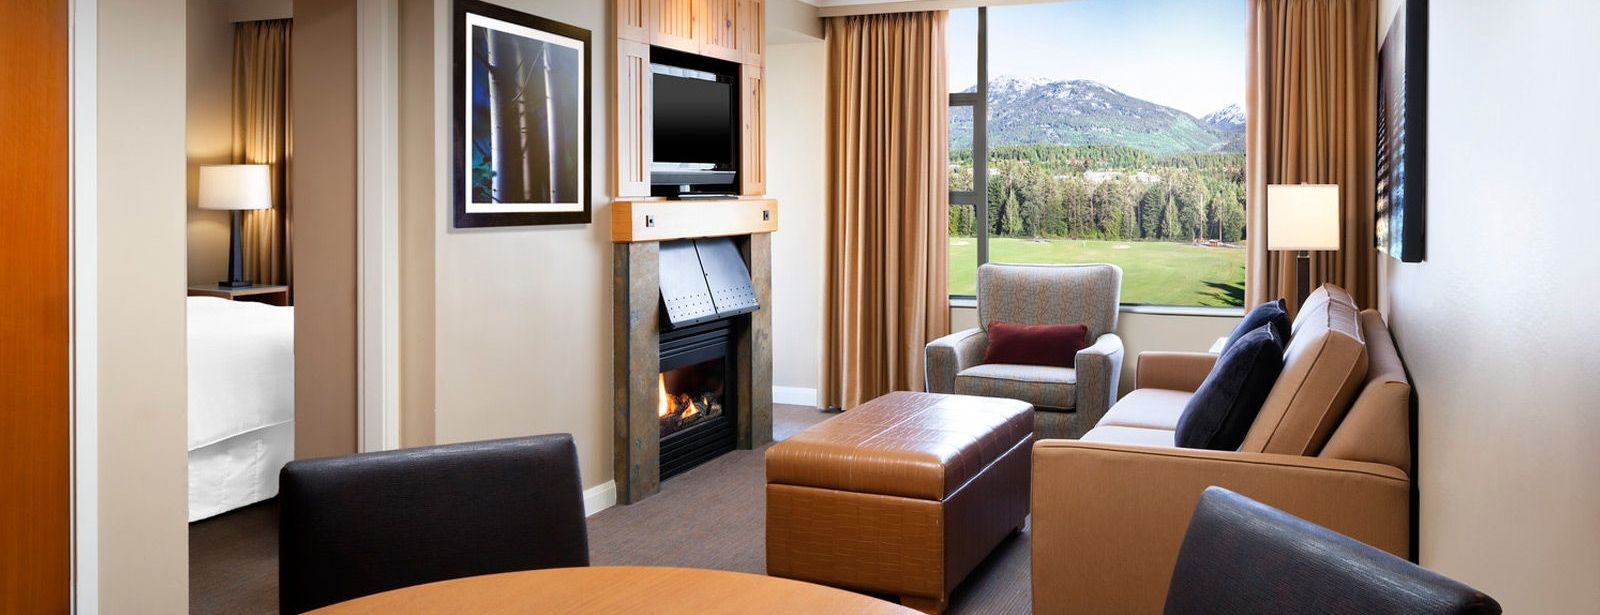 The Westin Resort & Spa, Whistler - One Bedroom Suites